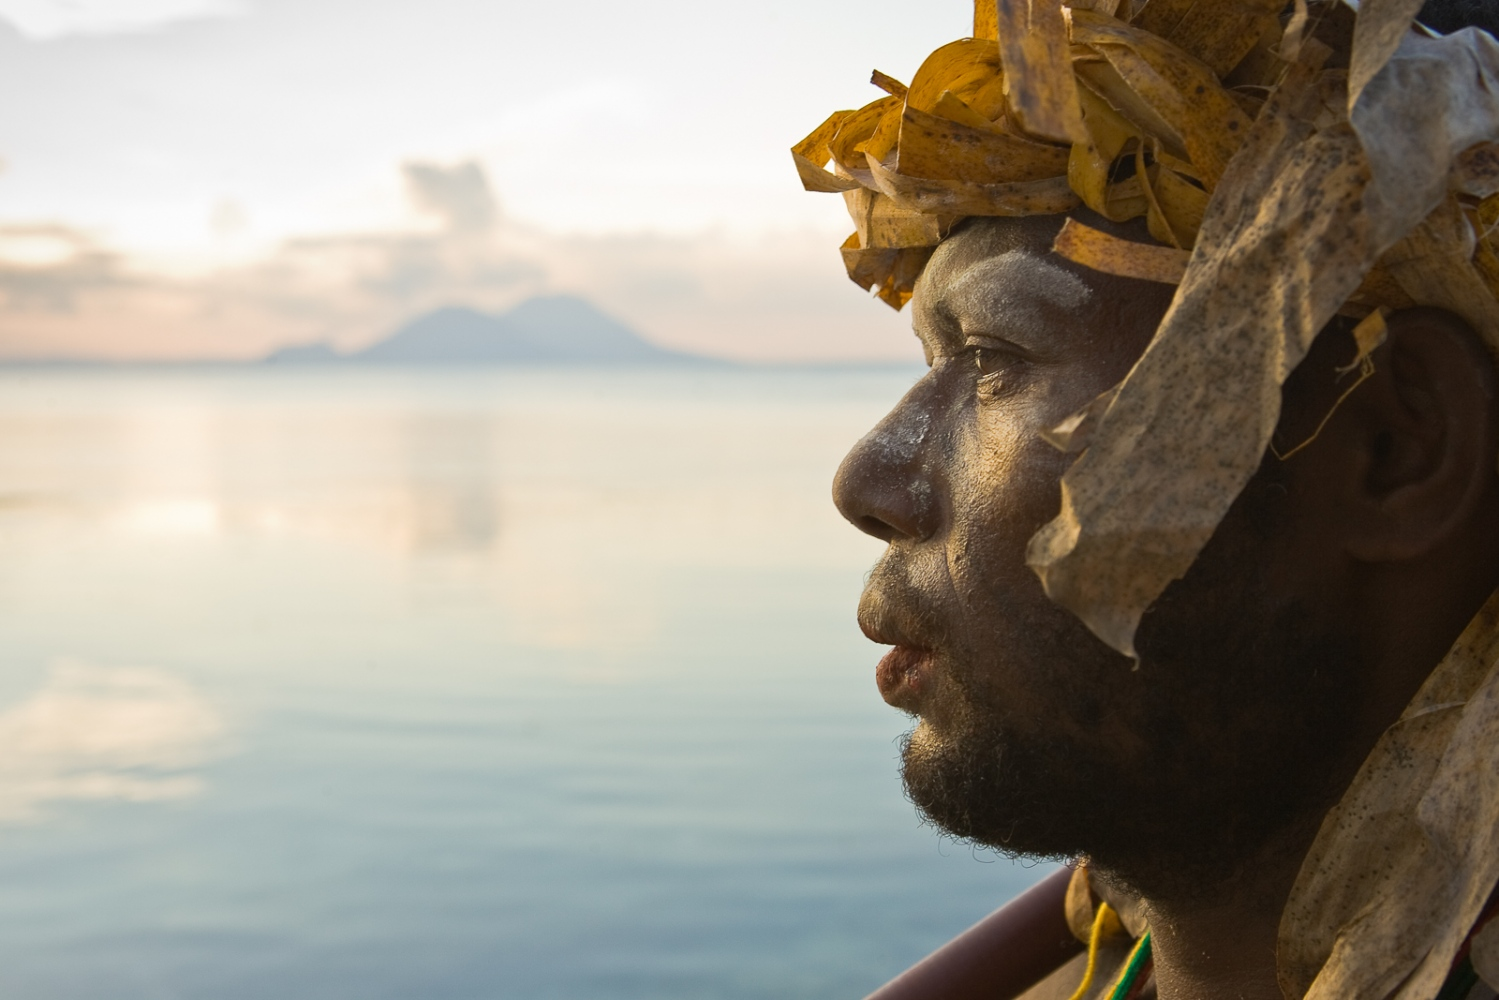 A local man reprises traditional costume, with sacred Tavurvur volcano in the background.